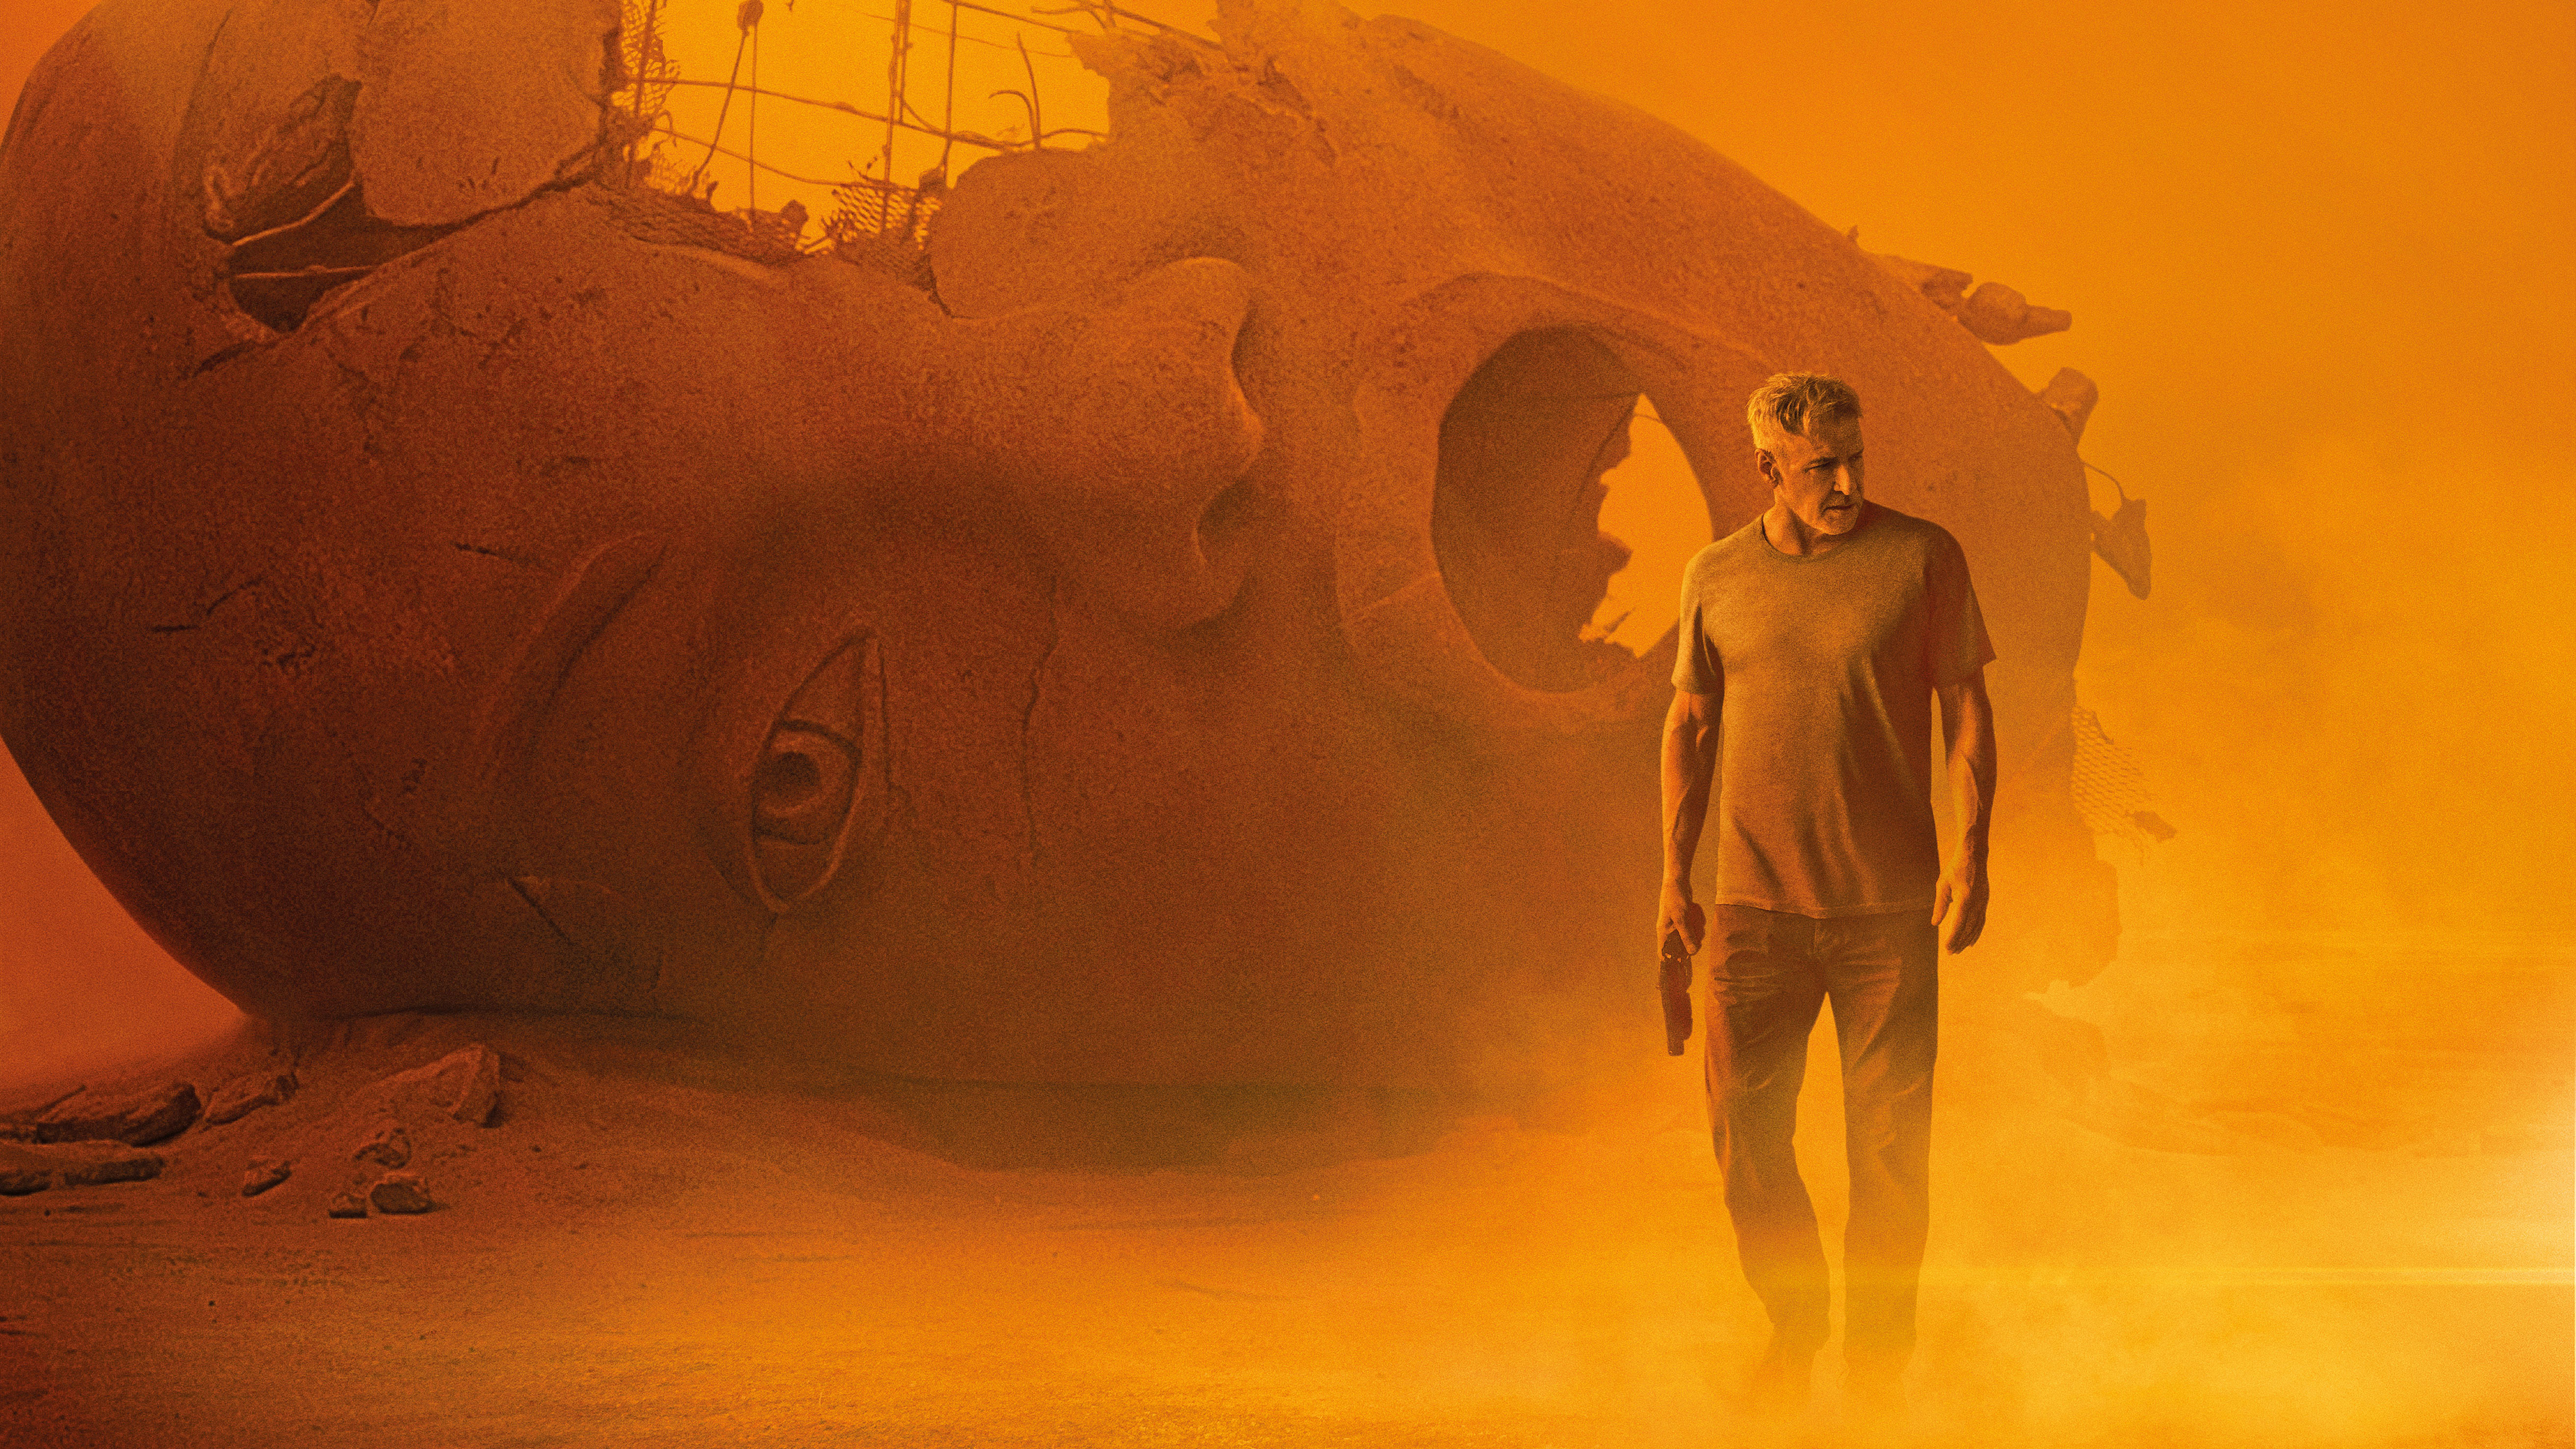 Blade Runner 2049 Wallpapers From Trailer 1920x1080: Blade Runner 2049 2017 Movie, HD Movies, 4k Wallpapers